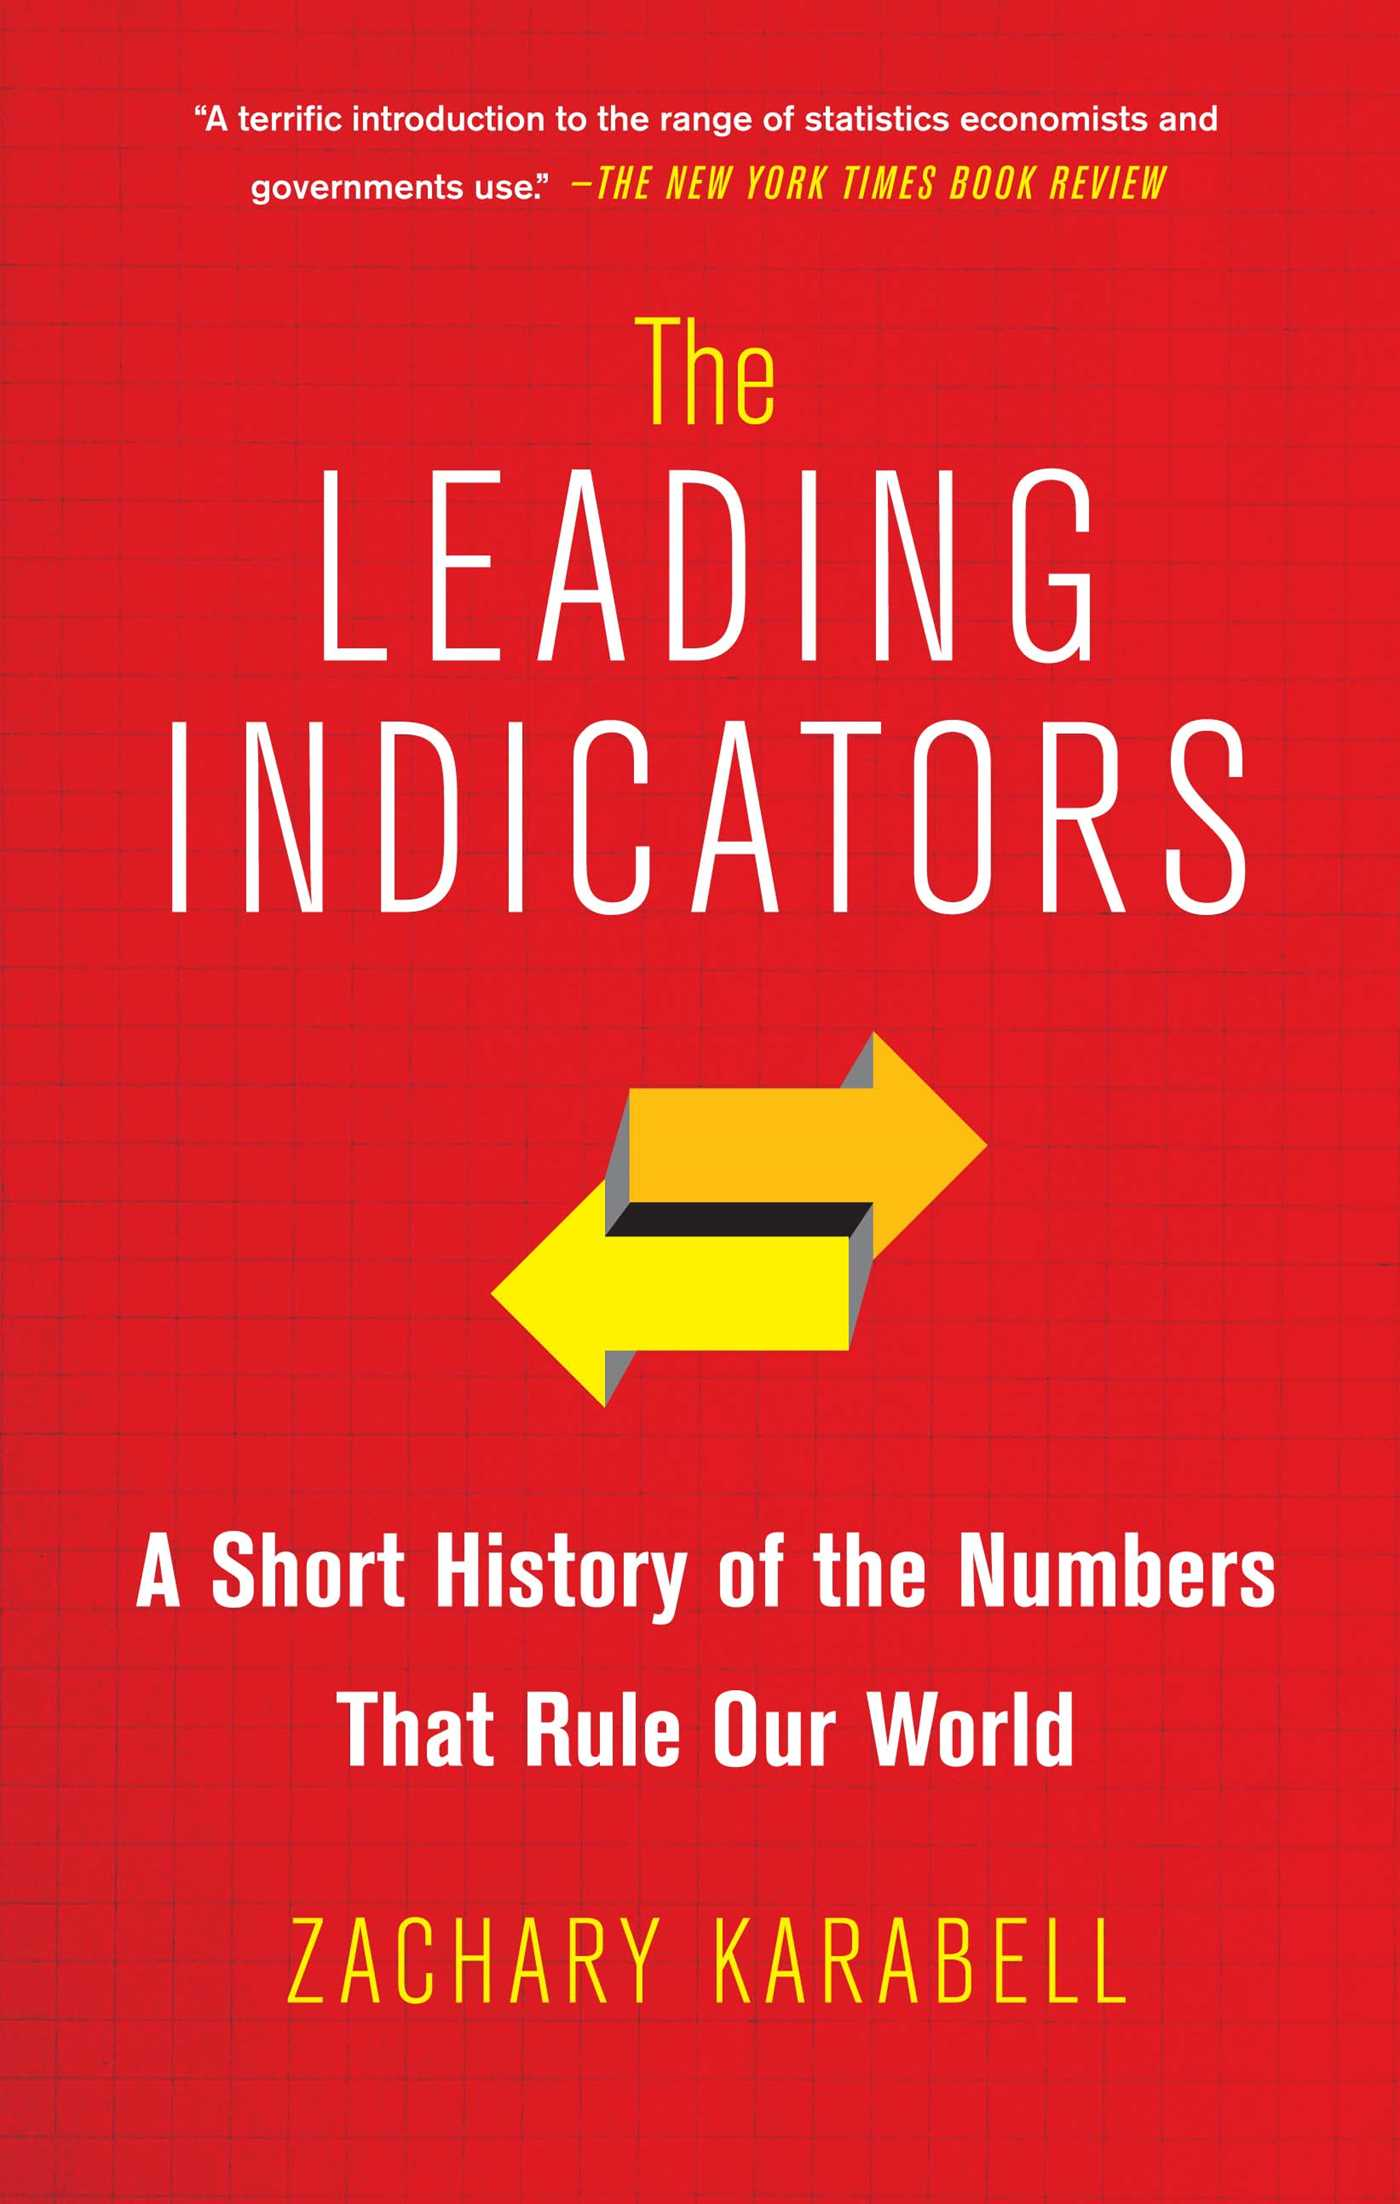 The leading indicators 9781451651256 hr